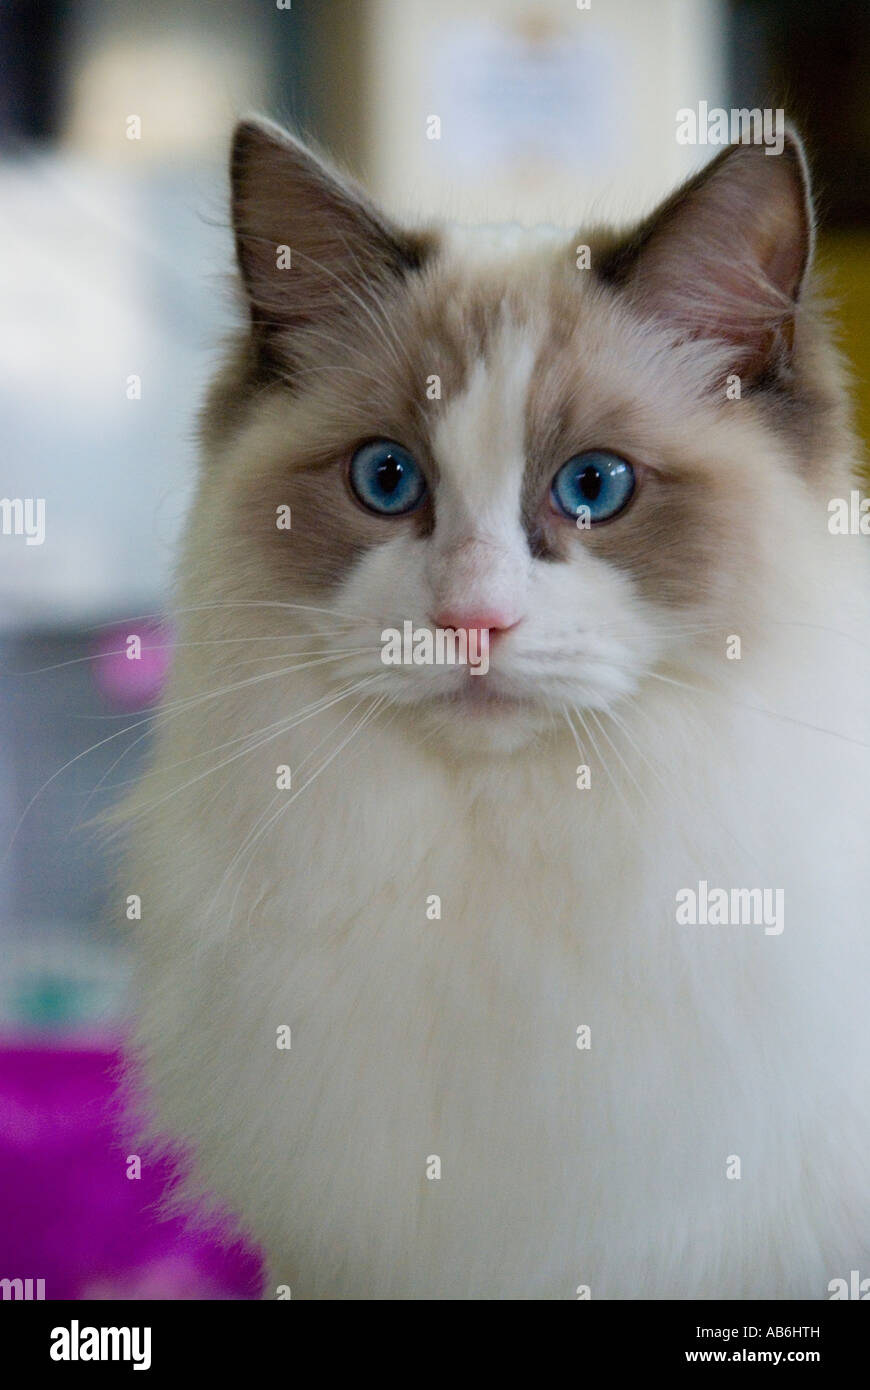 A blue eyed Rag Doll cat - Stock Image